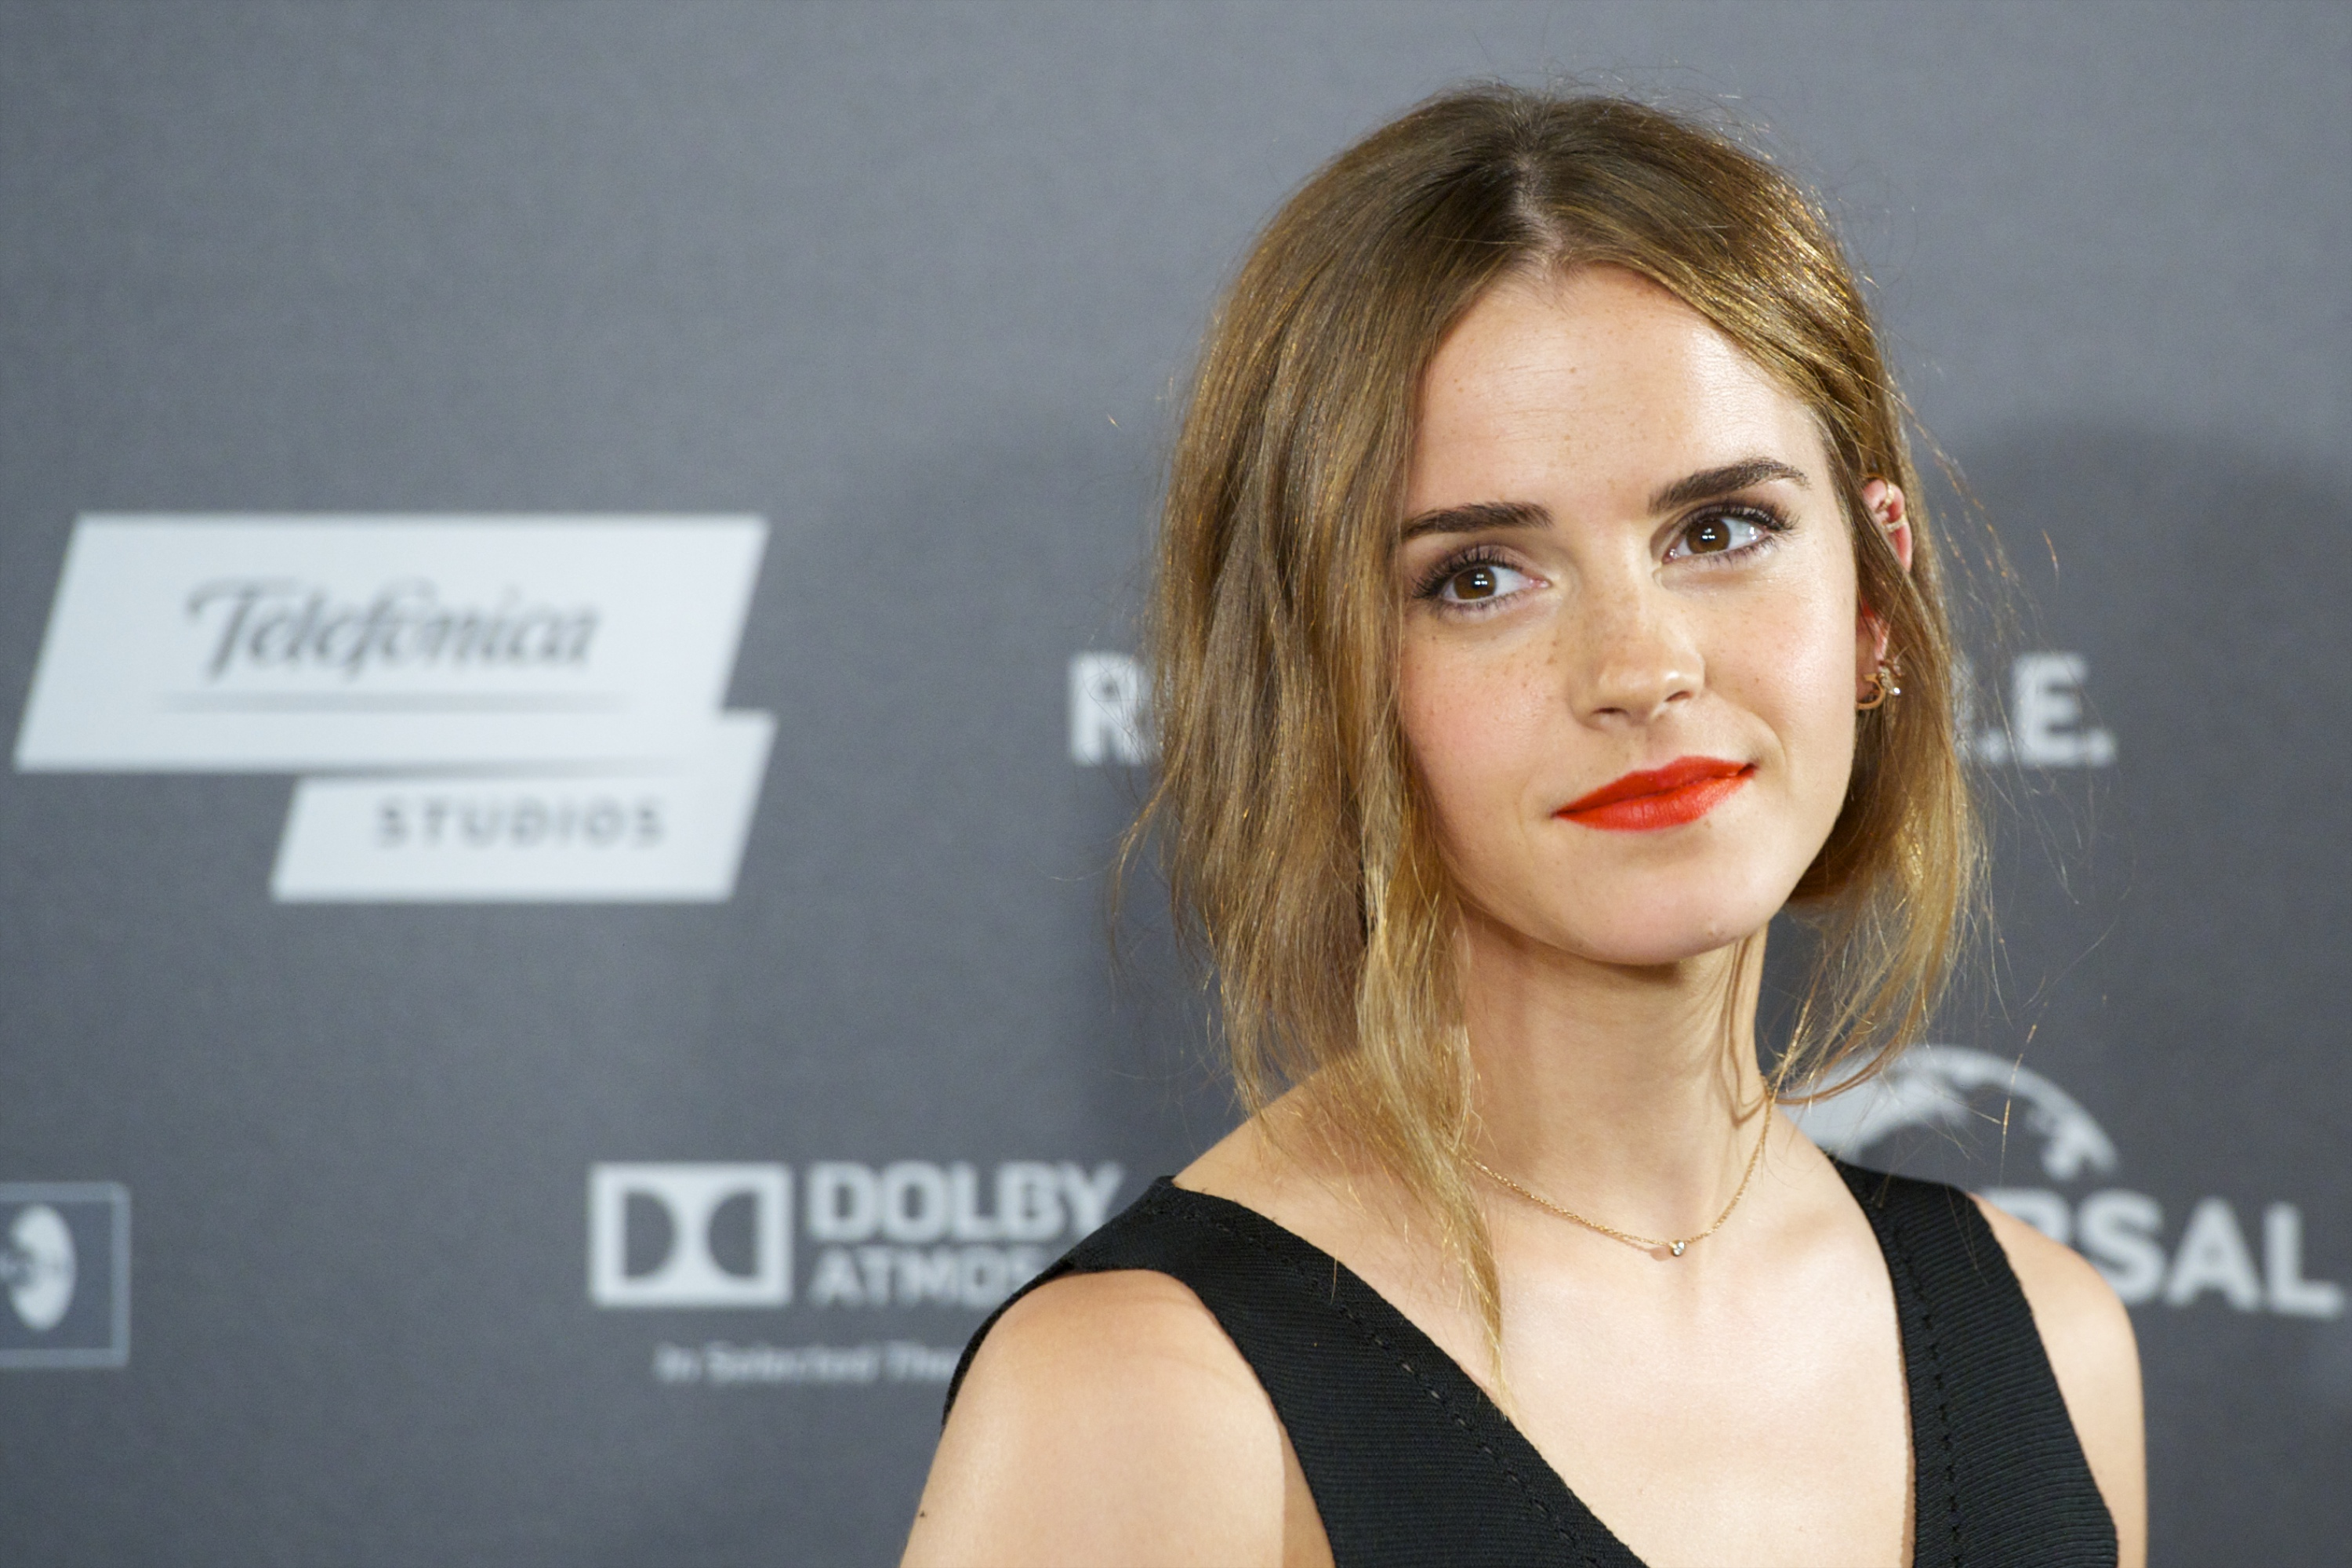 Emma Watson attends the 'Regression' photocall at Villamagna Hotel on Aug. 27, 2015 in Madrid, Spain.